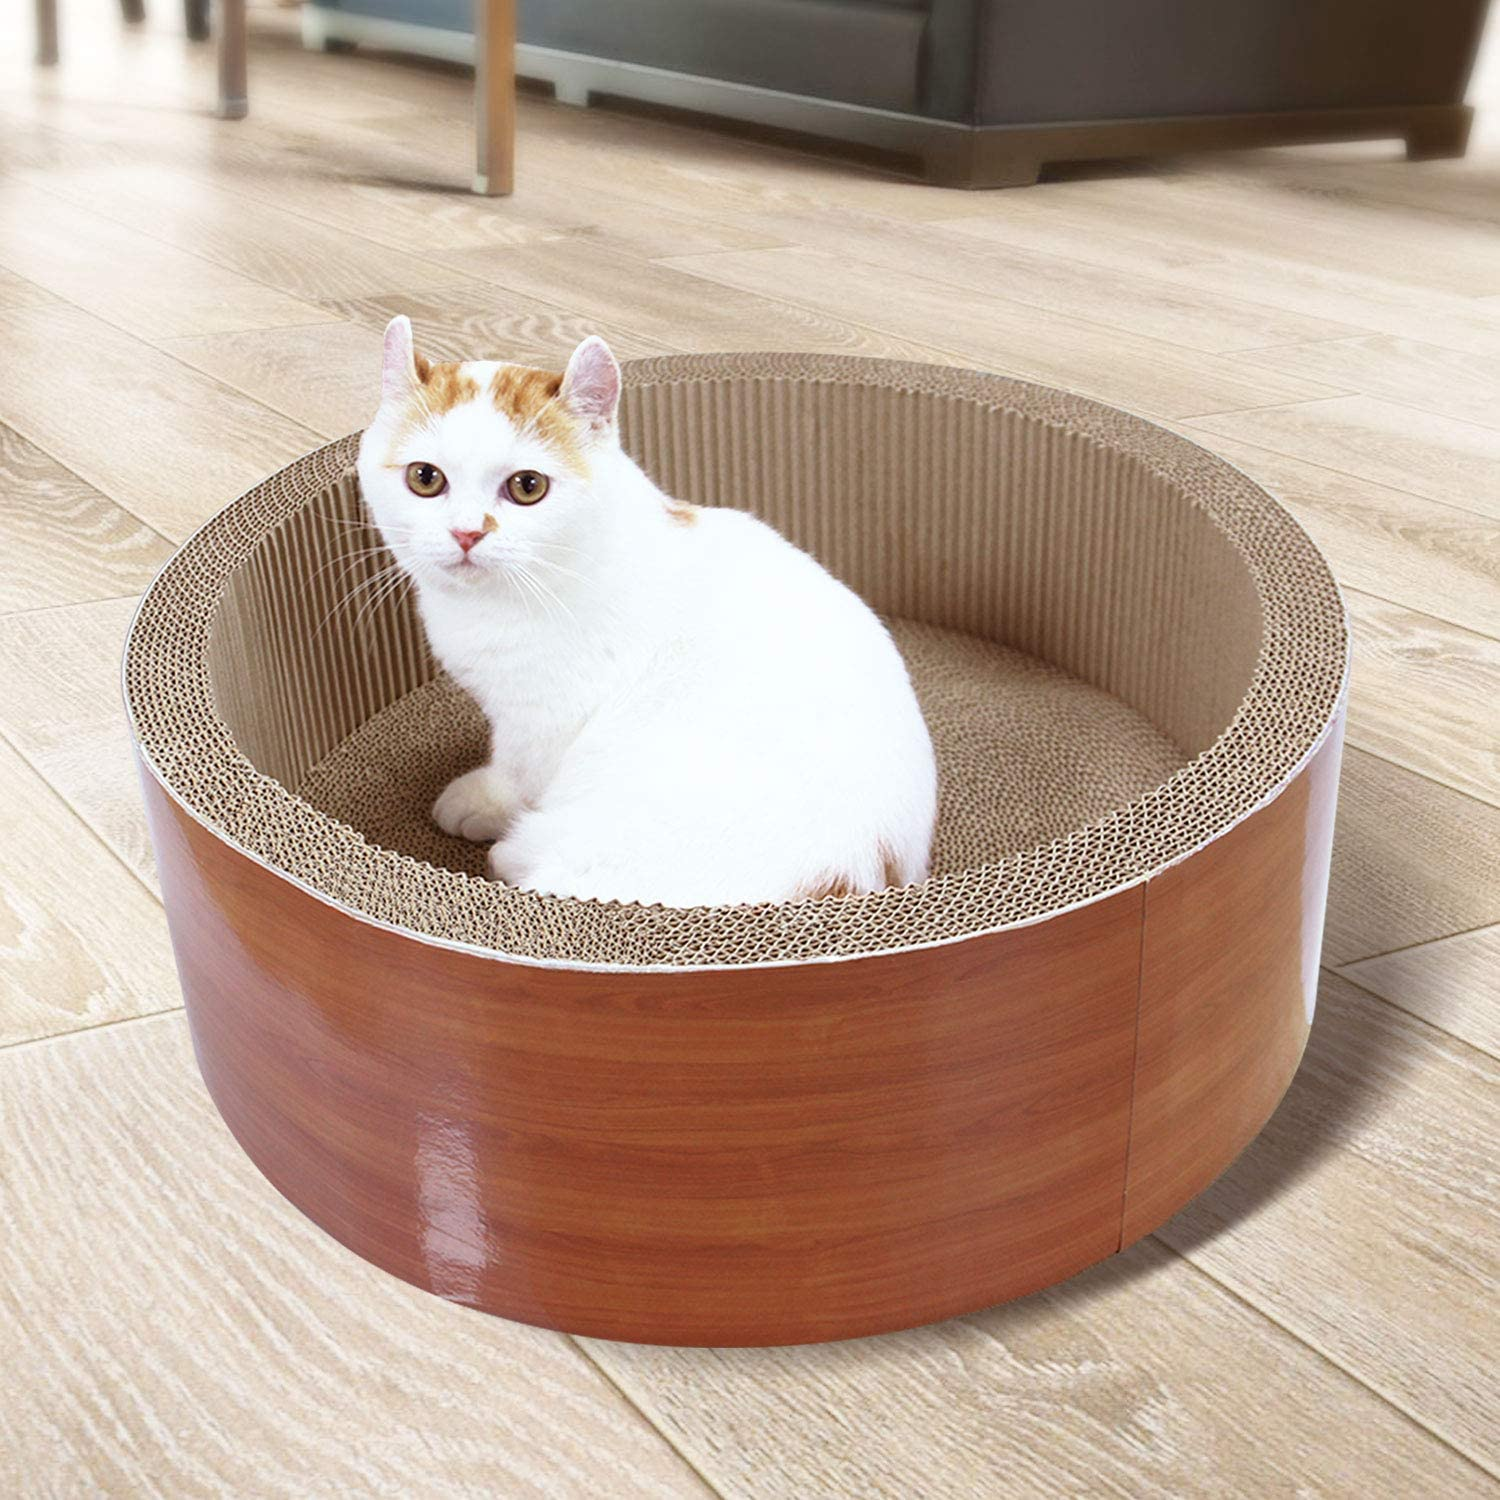 ScratchMe Cat Scratching Post Lounge Bed, Round Shape Cat Scratcher Cardboard Board Pads with Catnip, Durable Recycle Pad Toy Prevents Furniture Damage : Pet Supplies